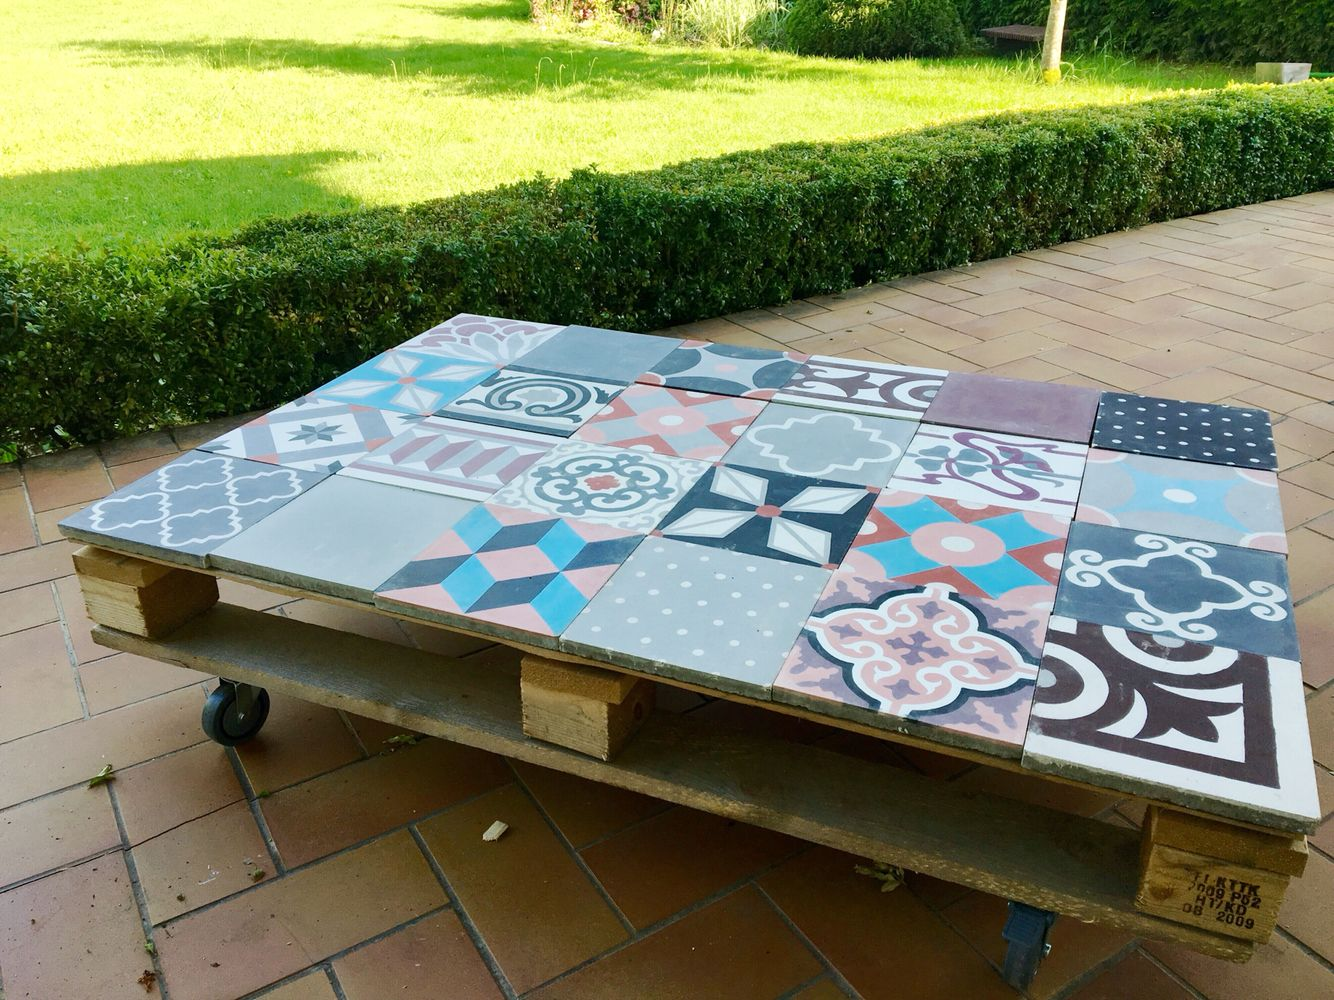 Table basse palette et carreaux ciment deco en 2019 tiles garden table et pallet furniture - Tables basses palette salon et jardin ...